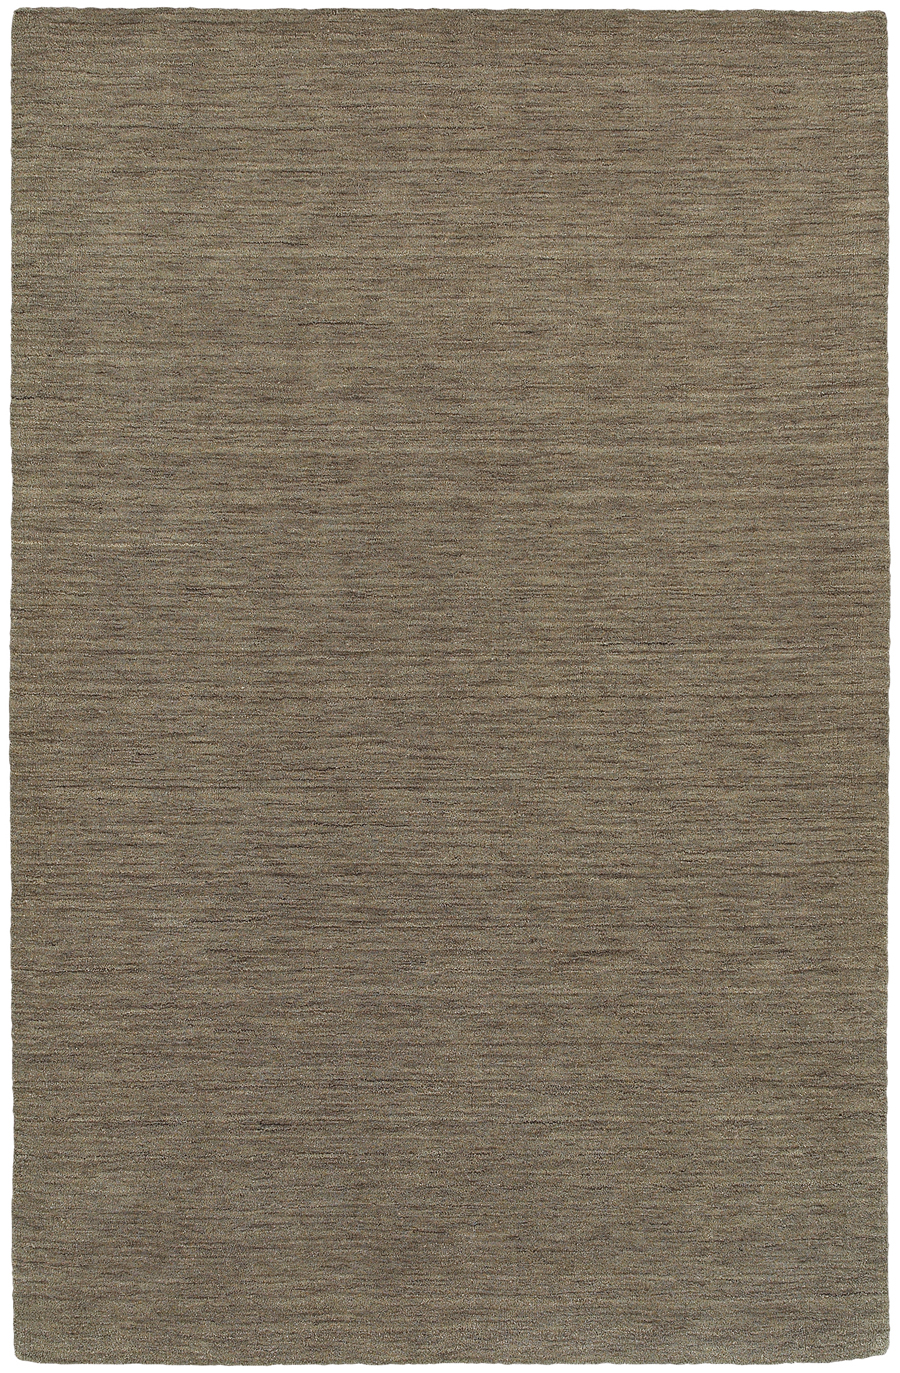 Oriental Weavers Sphinx Aniston 27105 Rug